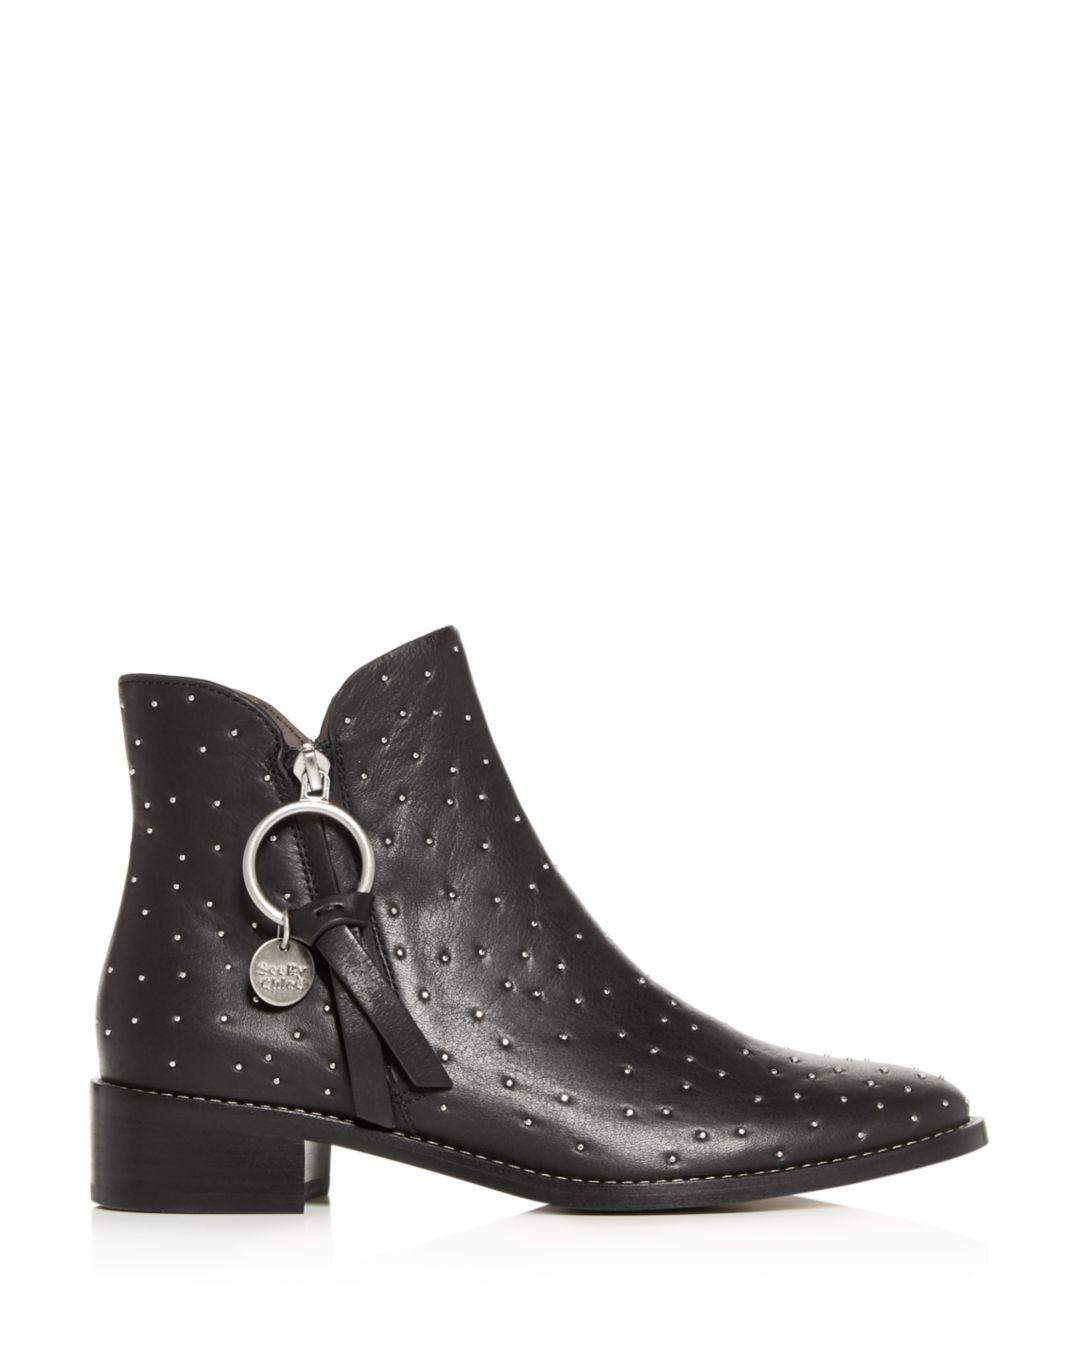 19d317d5 See By Chloé Black Women's Studded Low - Heel Booties